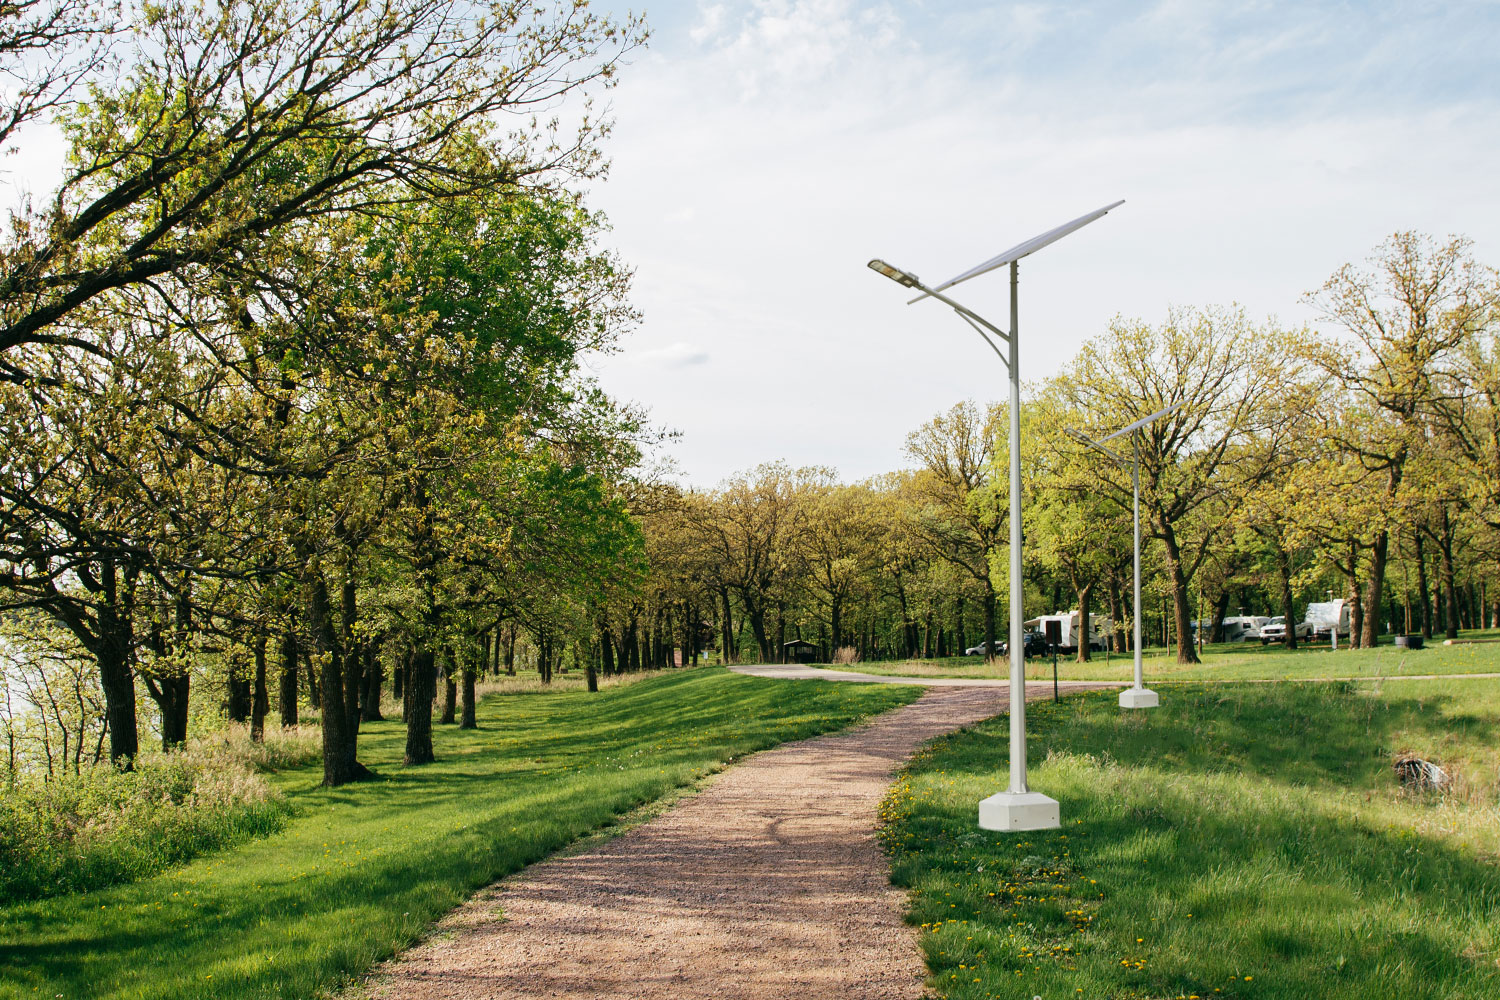 Solar street lights from GreenBright Design Build offer a stand-alone, off-grid system perfect for residential and commercial street lighting, rural areas, playgrounds, pathways, marinas, nature trails and more!